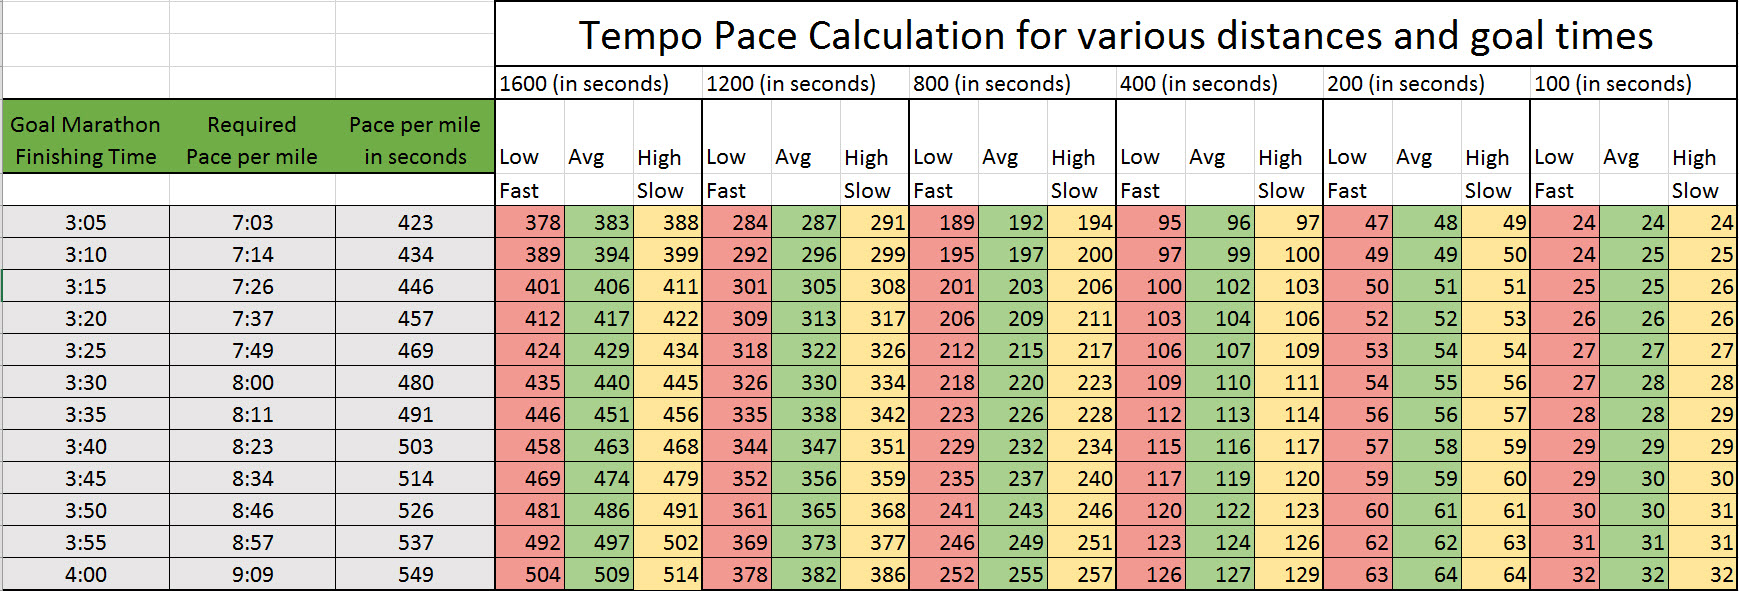 Here Are The Speed And Tempo Pace Charts From Chapter 6. You Can Zoom On  These Or Right Click To Print.